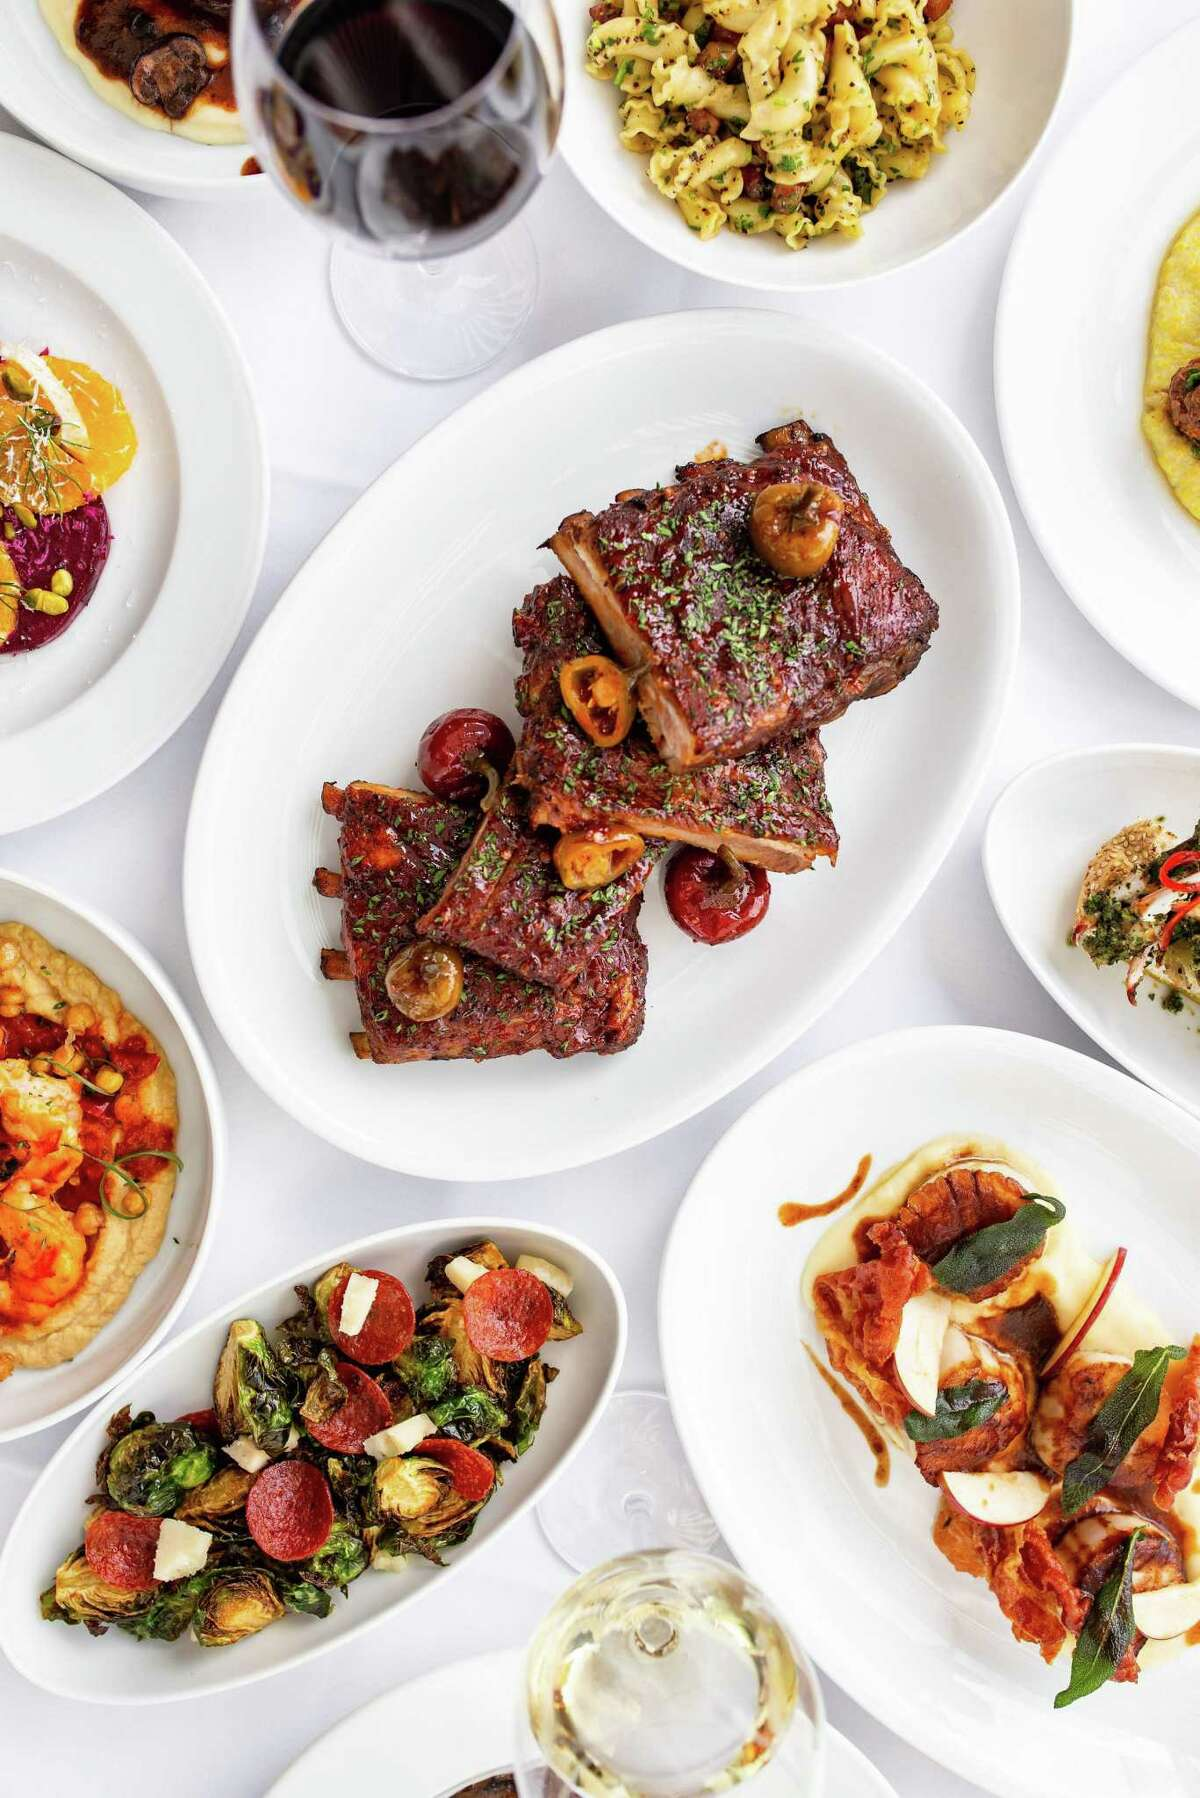 B.B. Italia Kitchen & Bar closed its location in the former Carmelo's Cucina Italiana, 14795 Memorial, and will relocate to a smaller space nearby. The menu includes dishes such as hot Italian cherry pepper glazed baby back ribs.